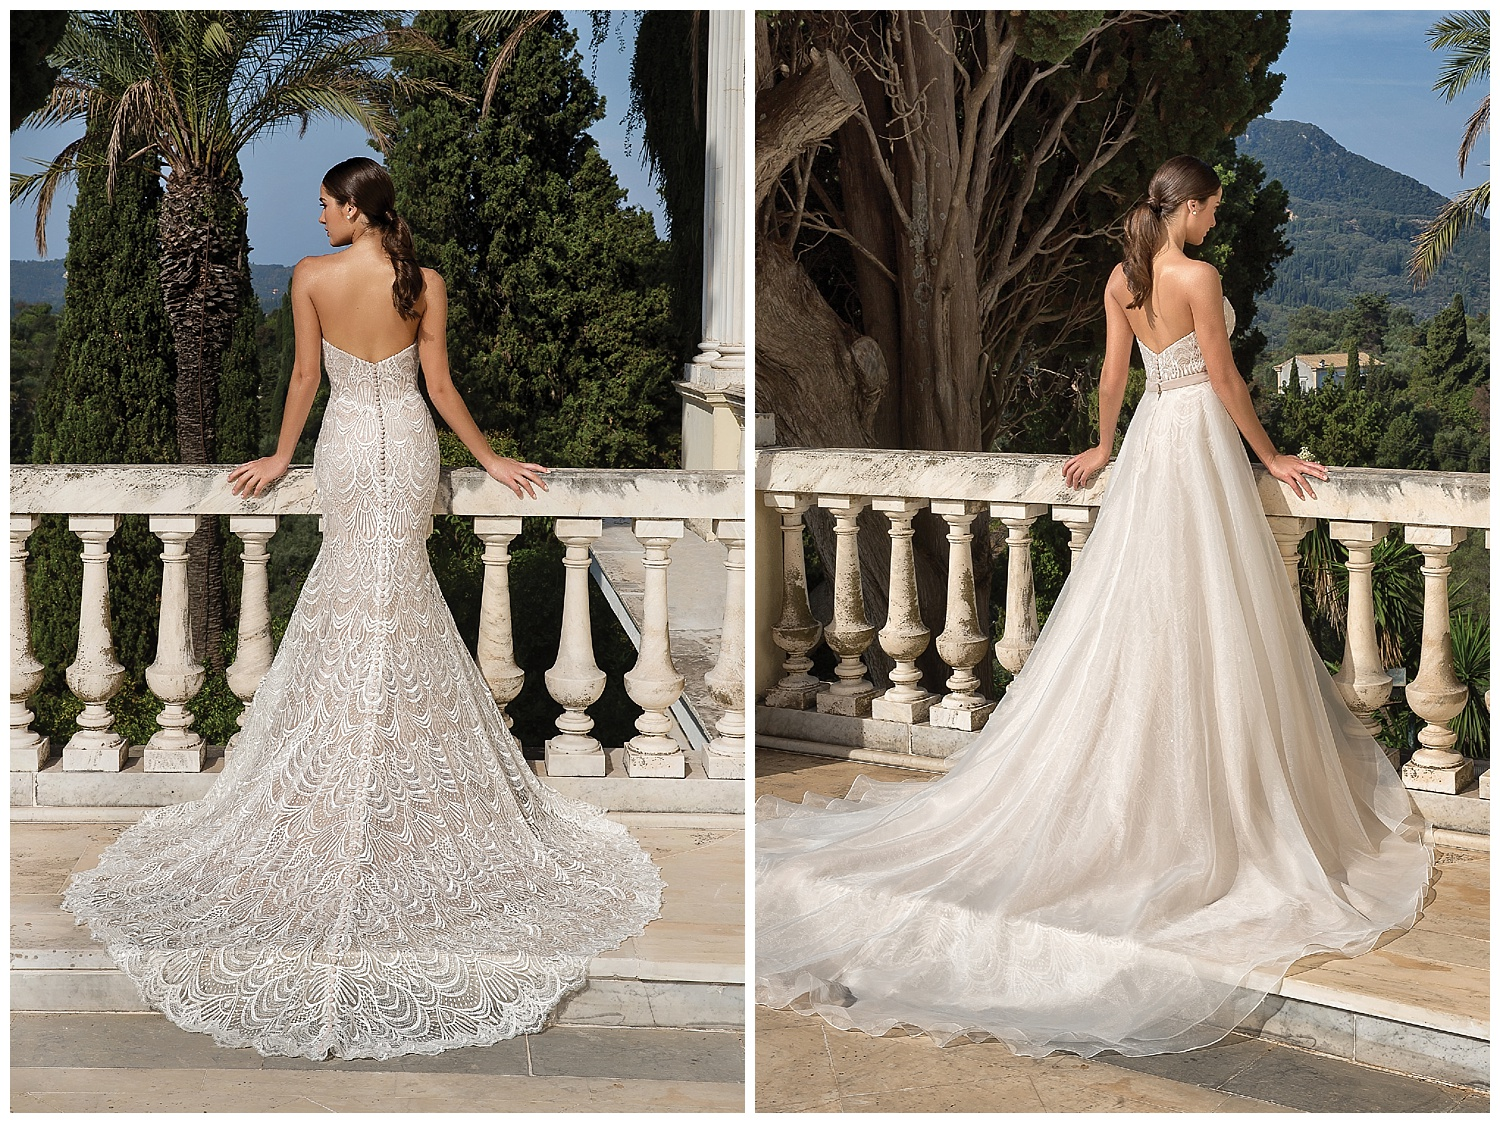 justin-alexander-88085-strapless-fitted-lace-wedding-dress-epiphany-boutique-carmel-california.jpg